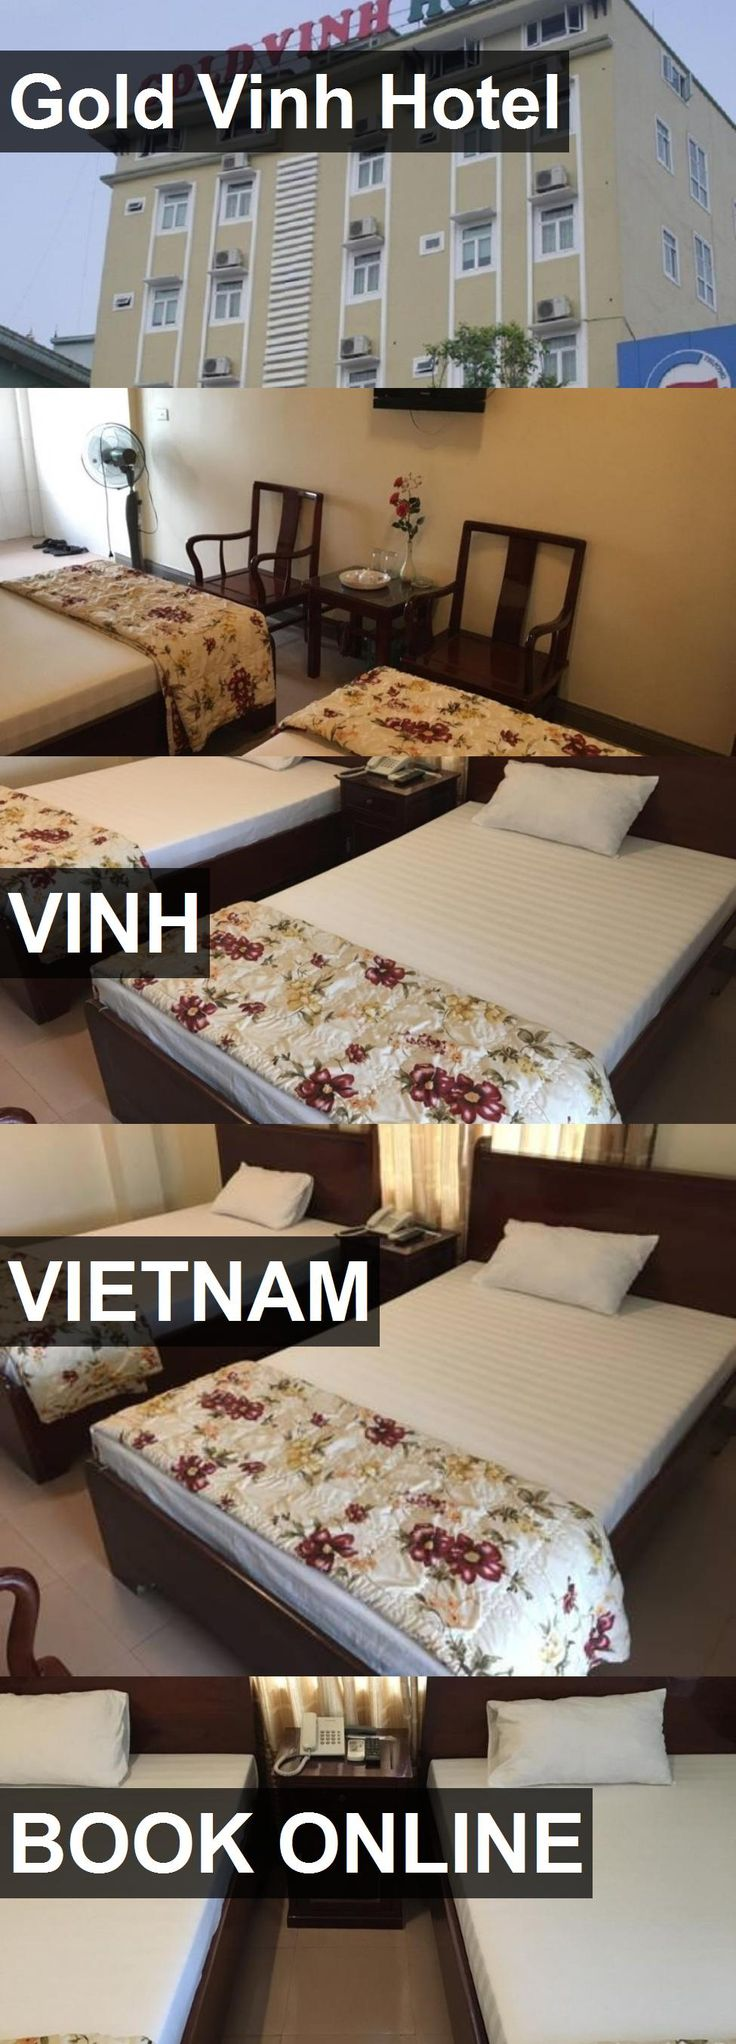 Gold Vinh Hotel in Vinh, Vietnam. For more information, photos, reviews and best prices please follow the link. #Vietnam #Vinh #travel #vacation #hotel